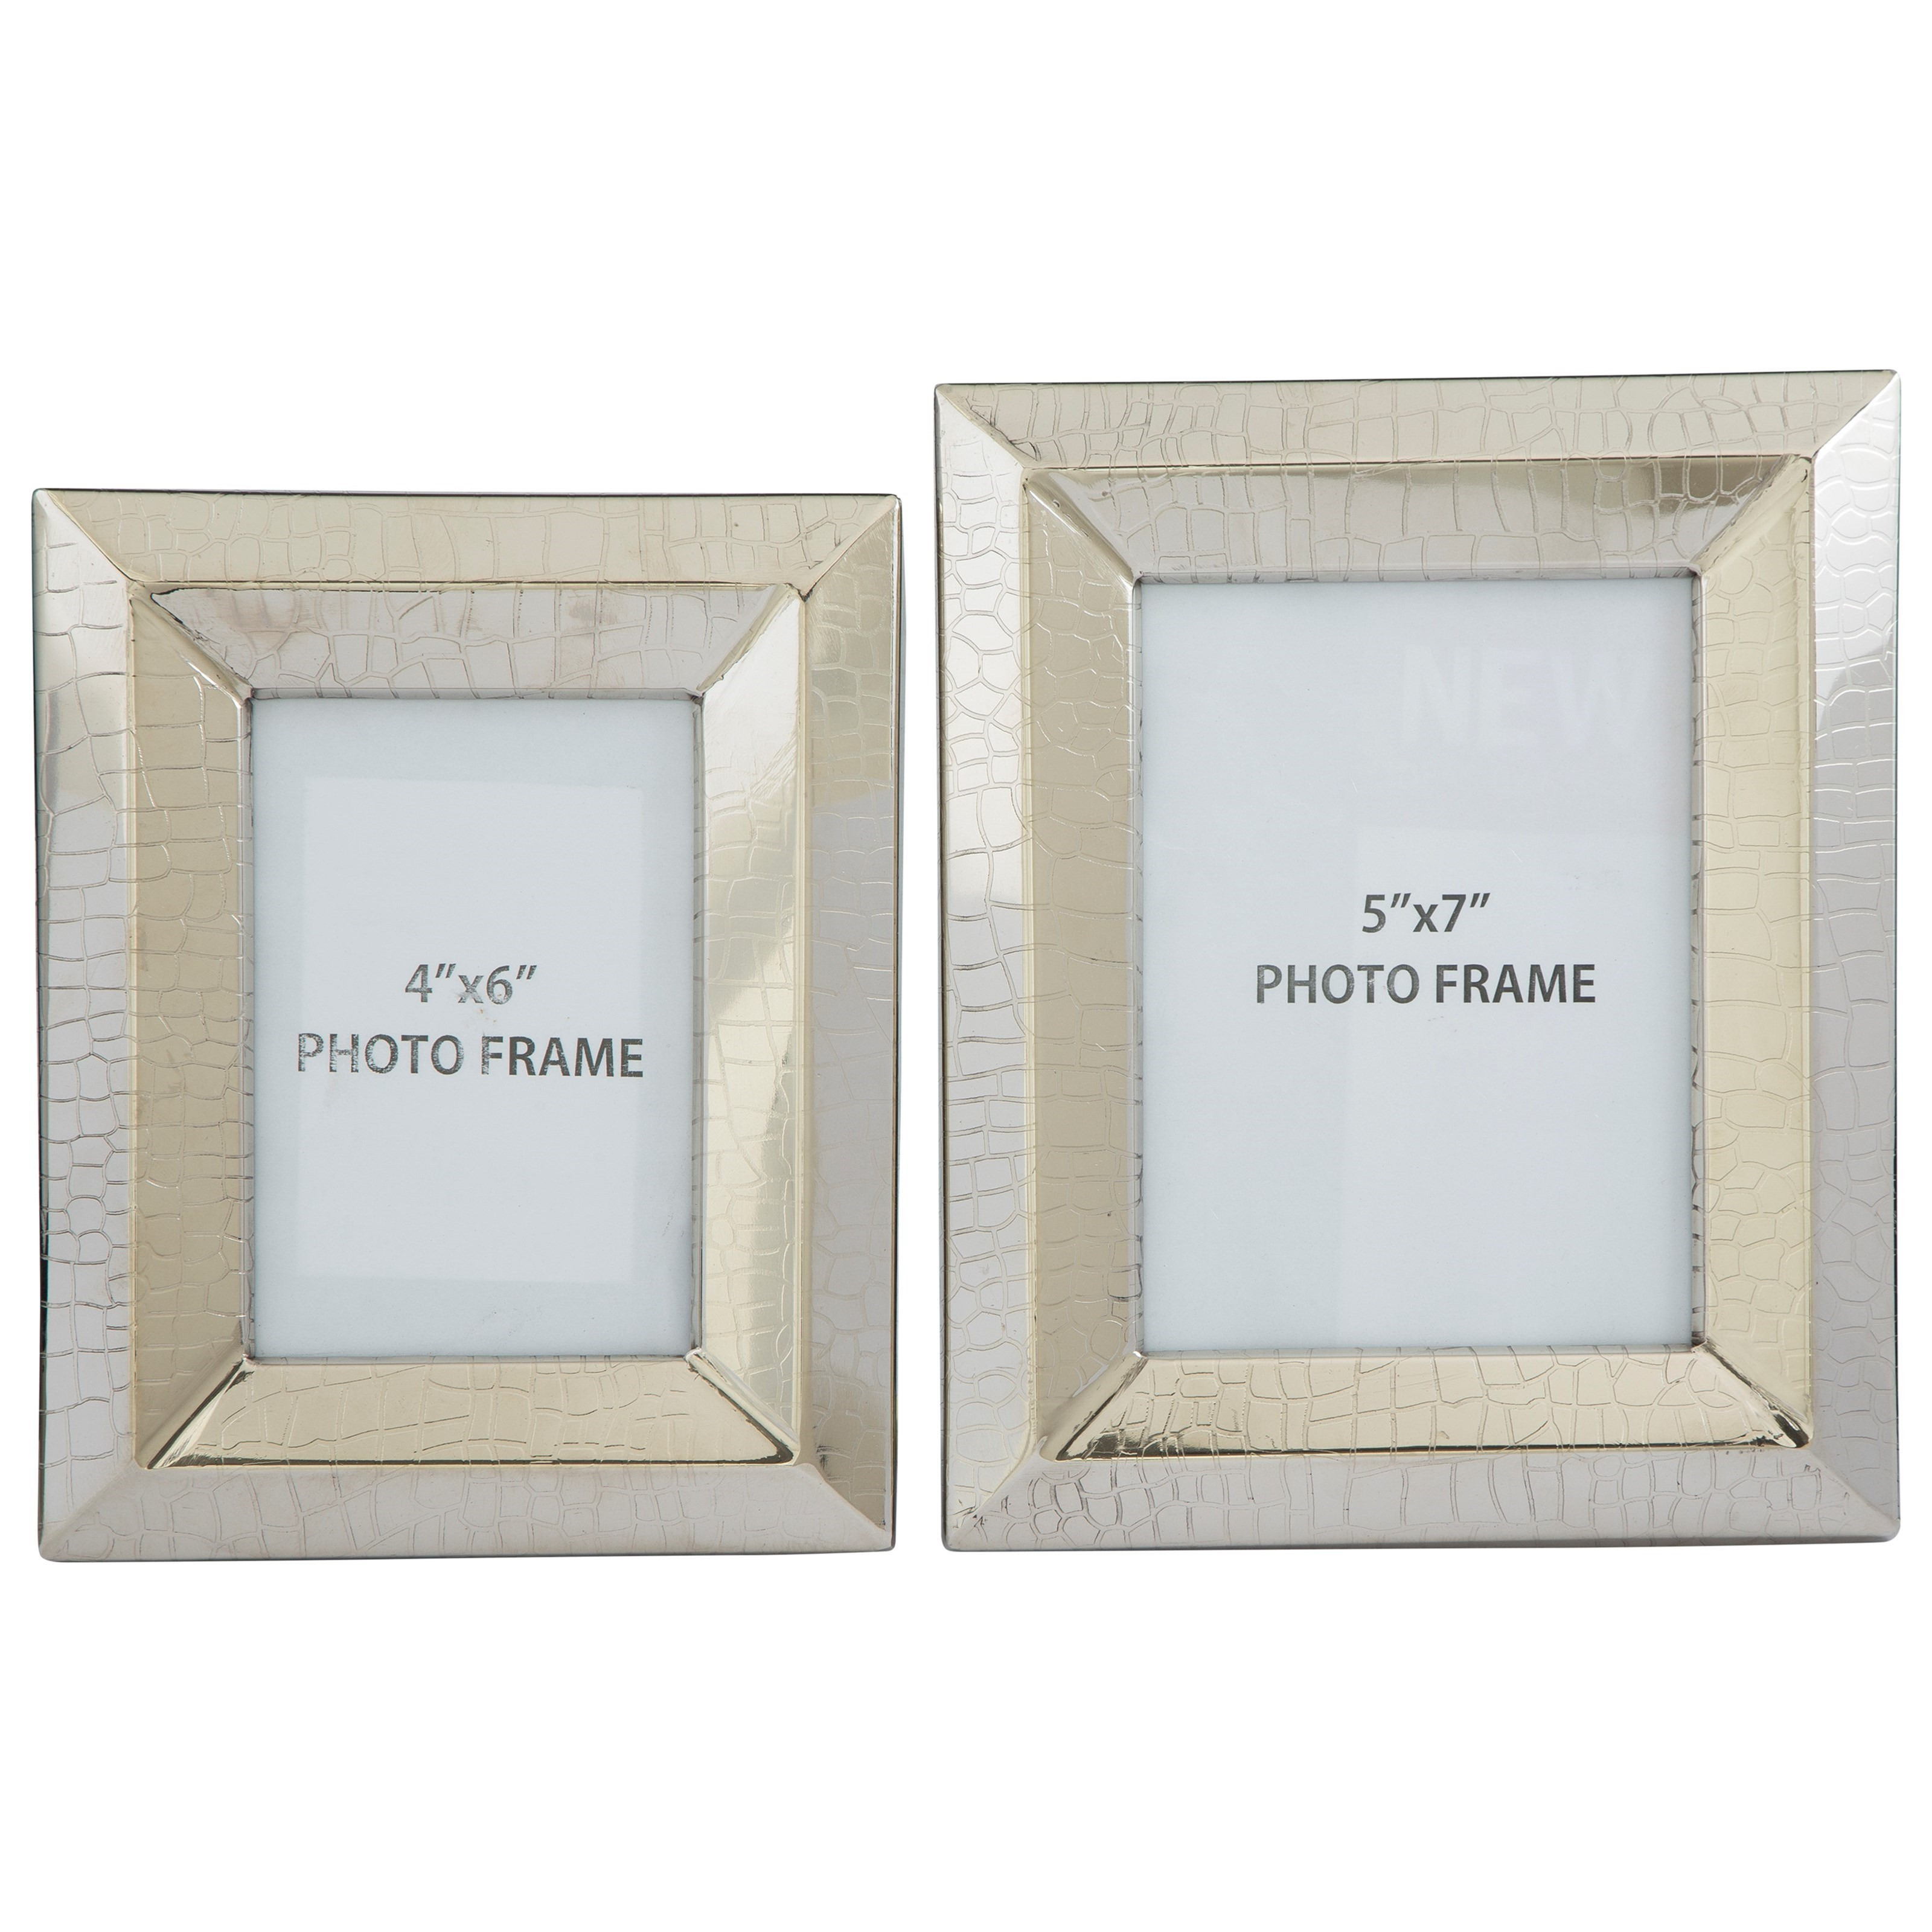 Signature Design by Ashley Accents Keyon Nickel Finish Photo Frames (Set of 2) - Item Number: A2000197F